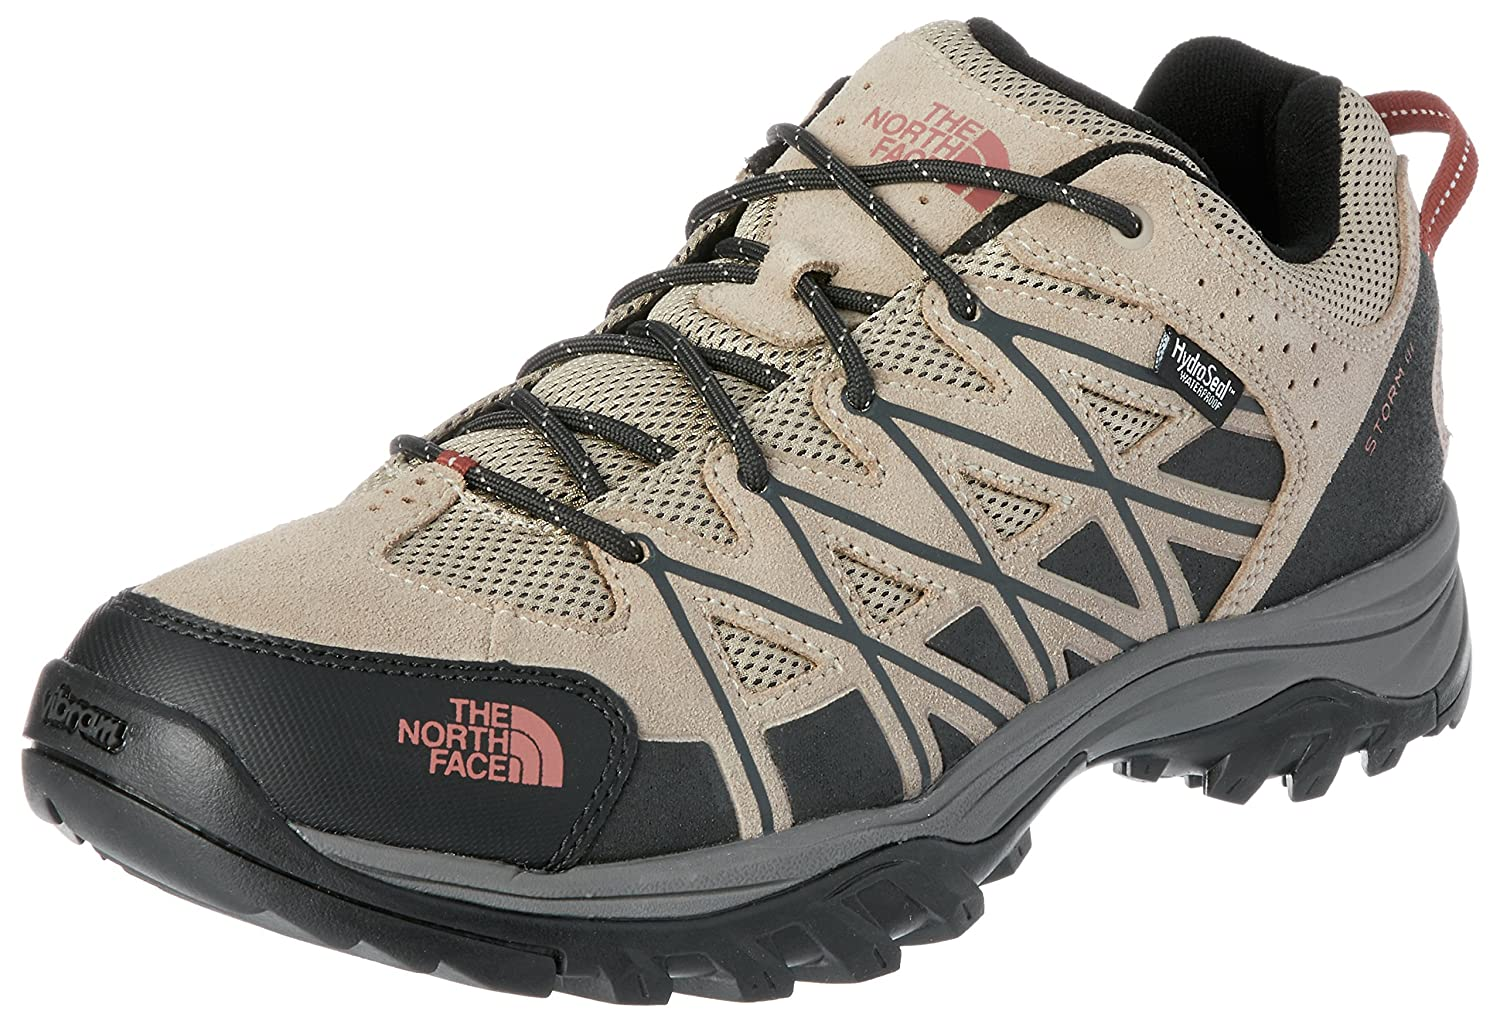 The North Face Men's Storm III WP Hiking Shoes Graphite Grey & Biking Red Hiker 32ZE